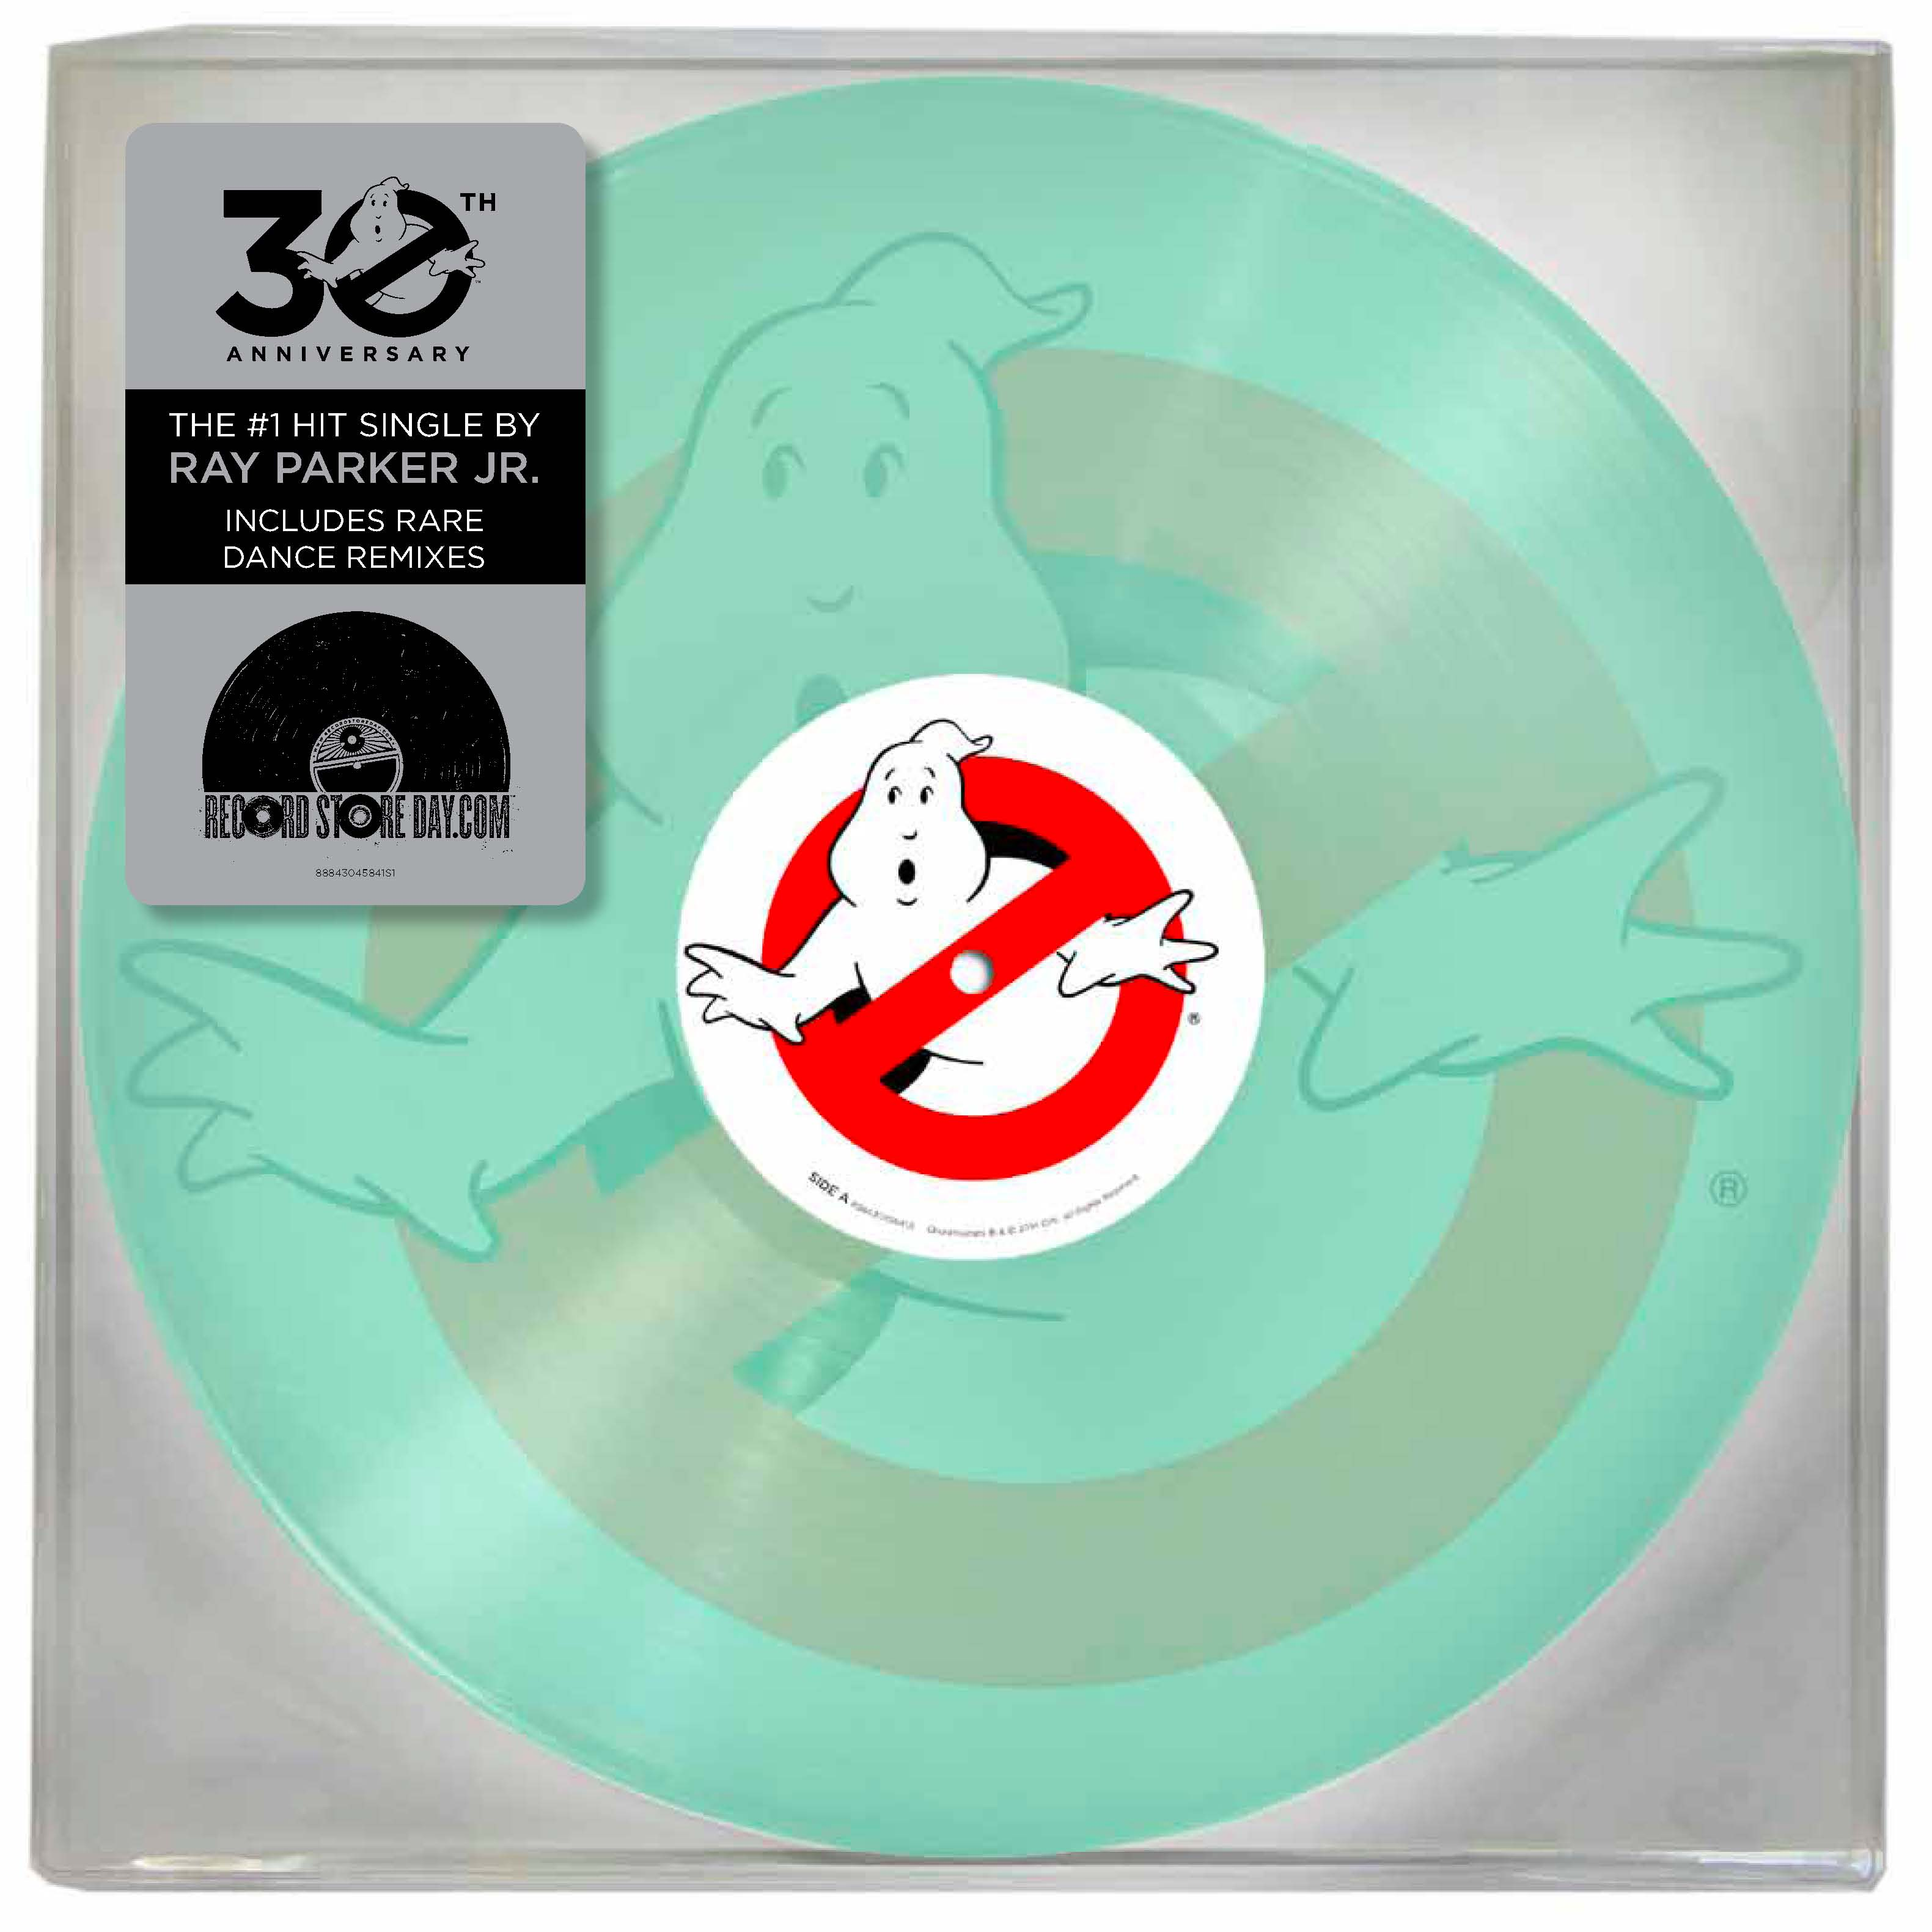 Record Store Day Ghostbusters Theme Gets Super Cool